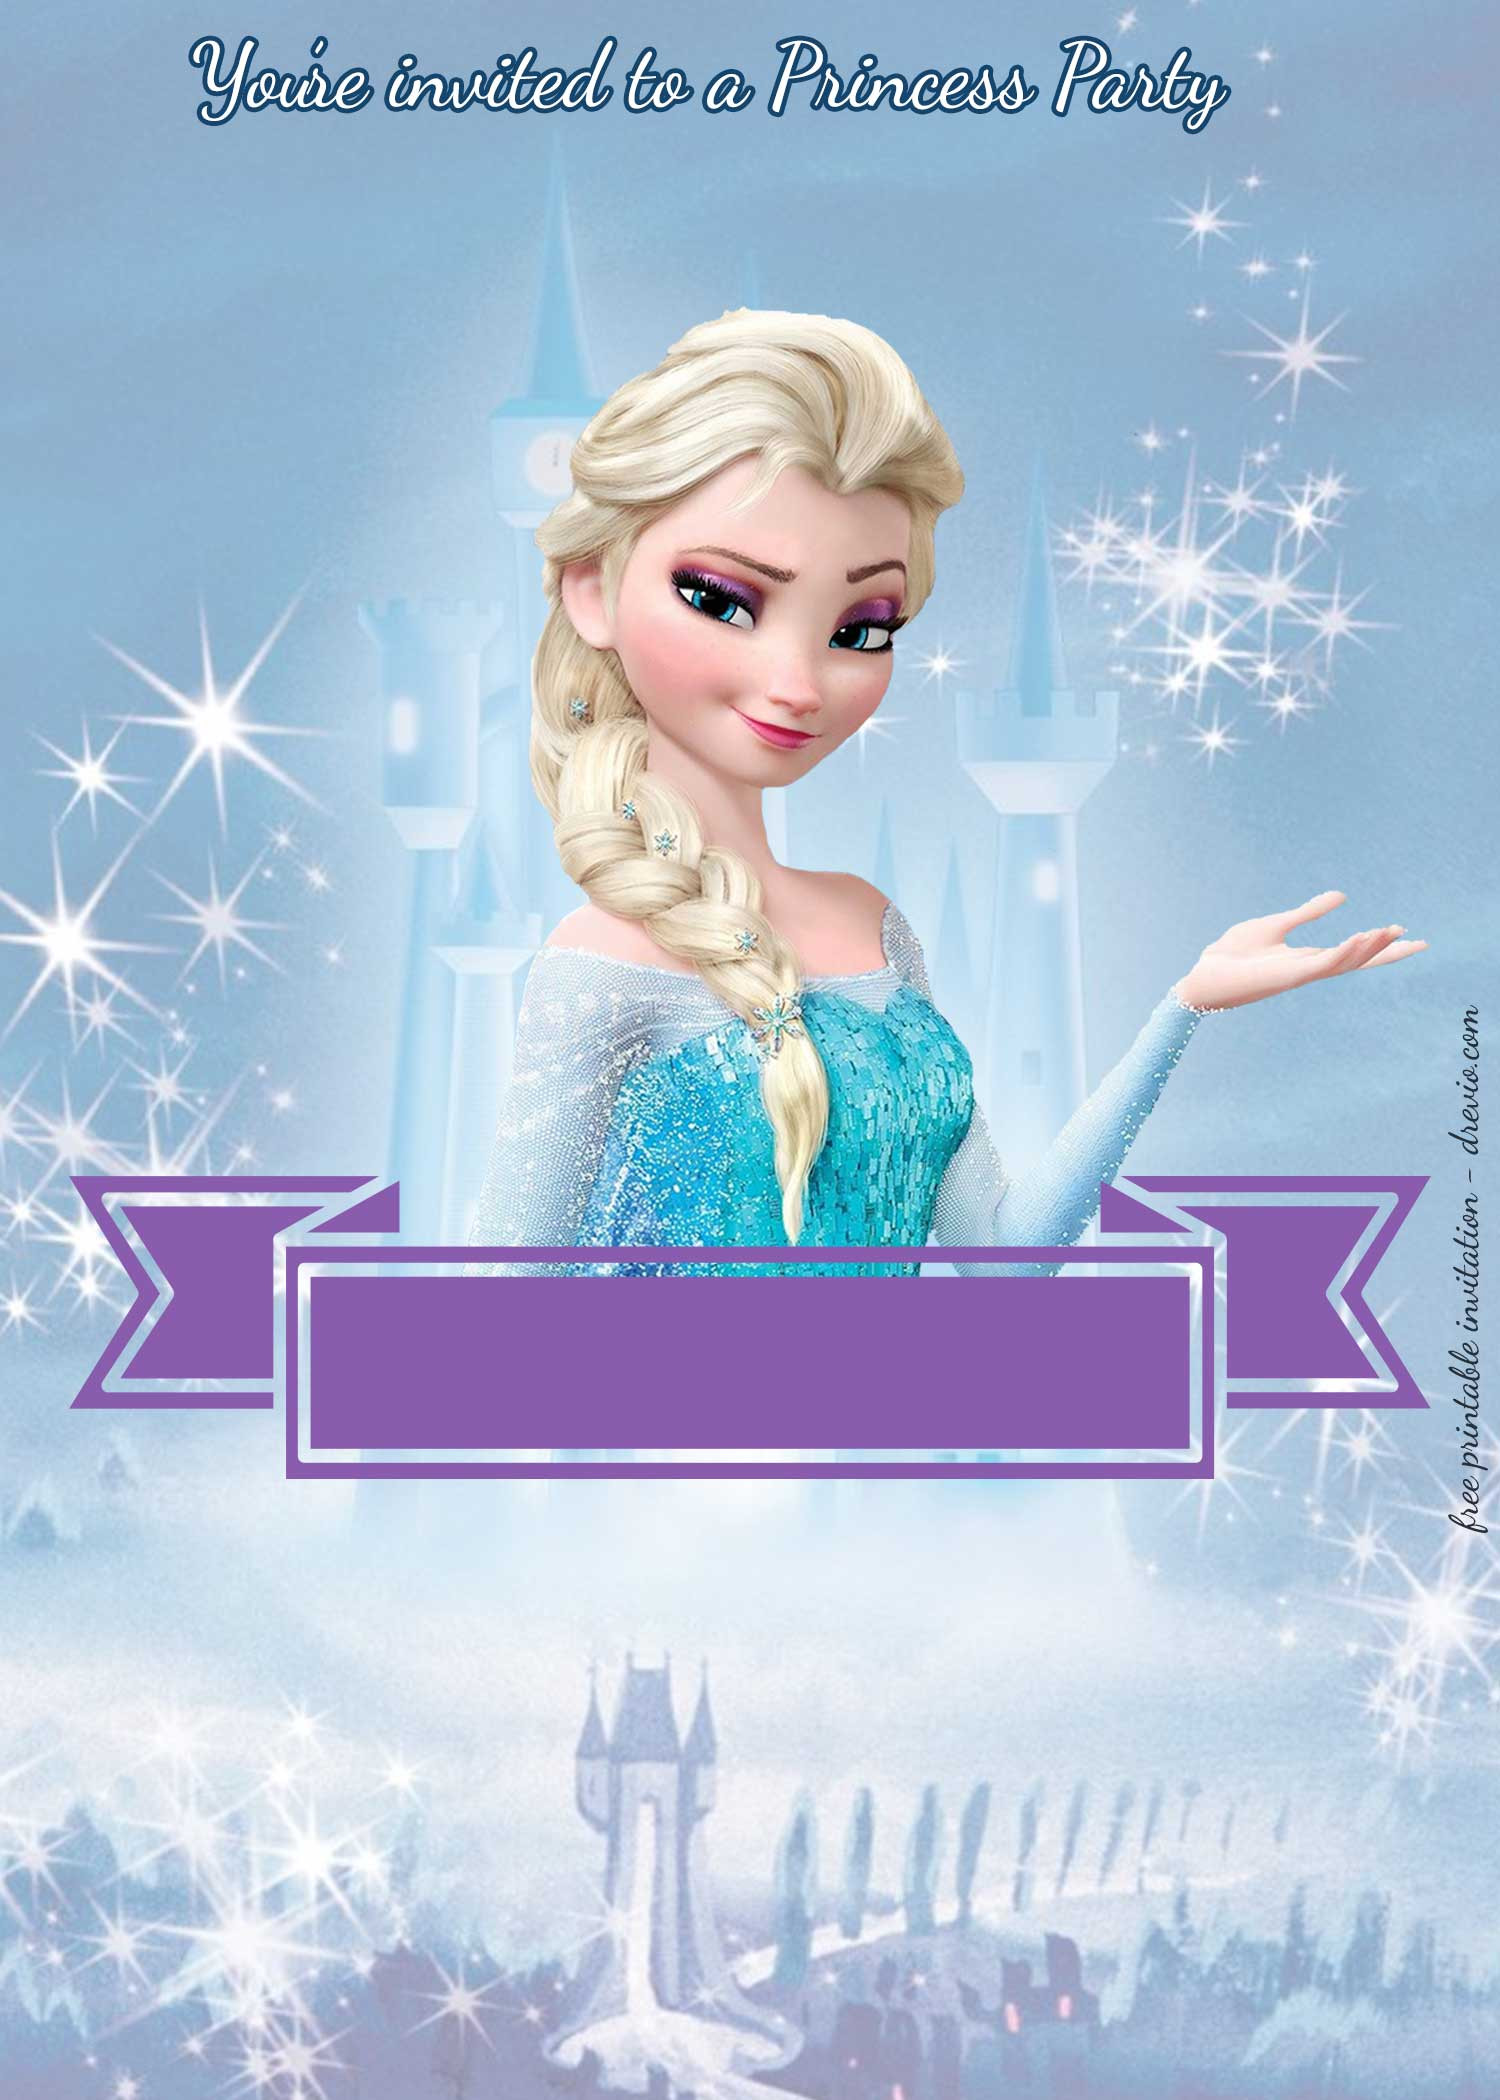 Frozen Invite Printable Free Princess Party Invitation—princess Elsa Frozen